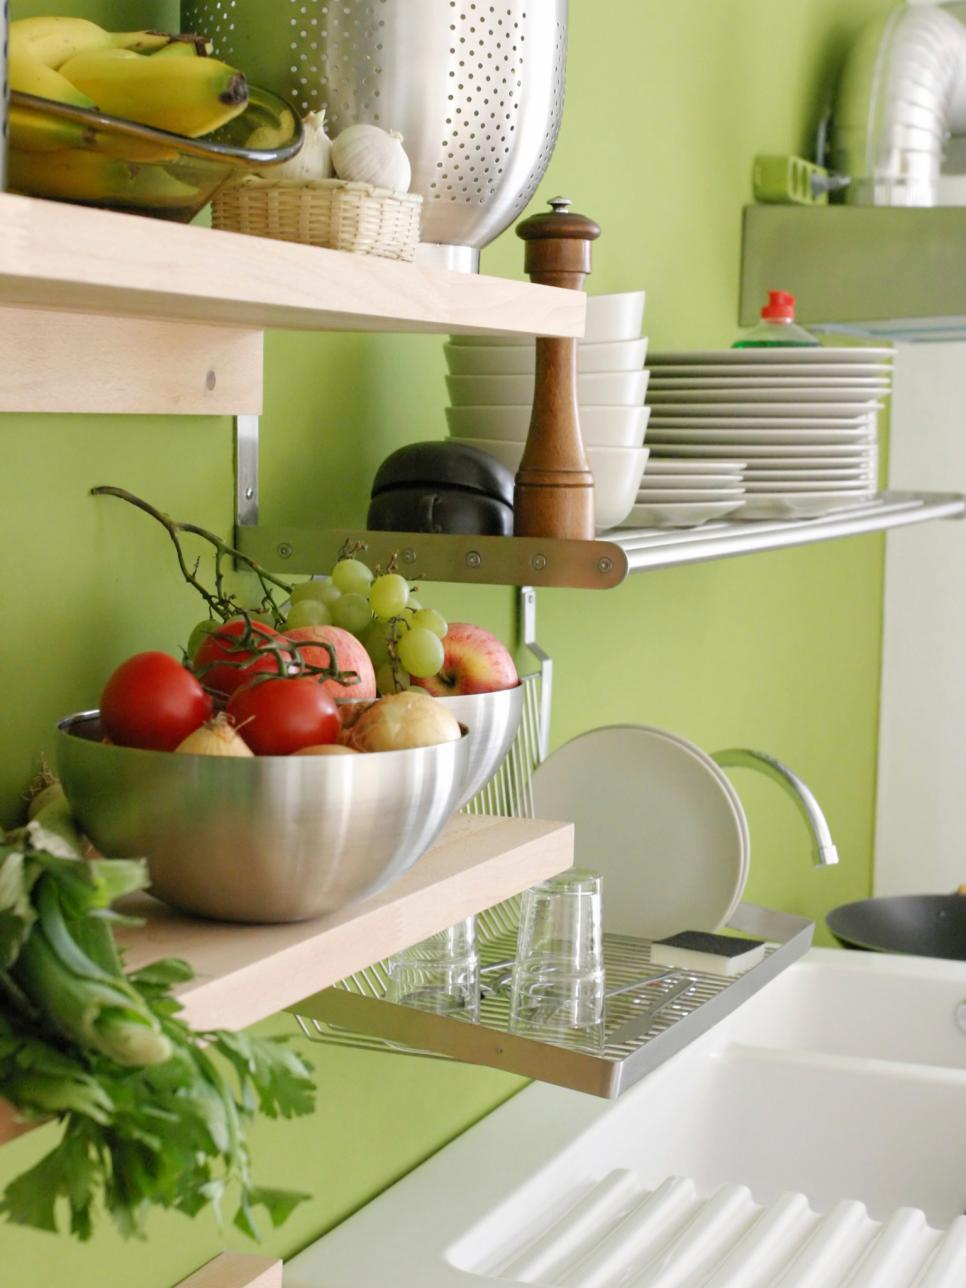 Marvelous Design Of Kitchen Shelf #3: DIY Network